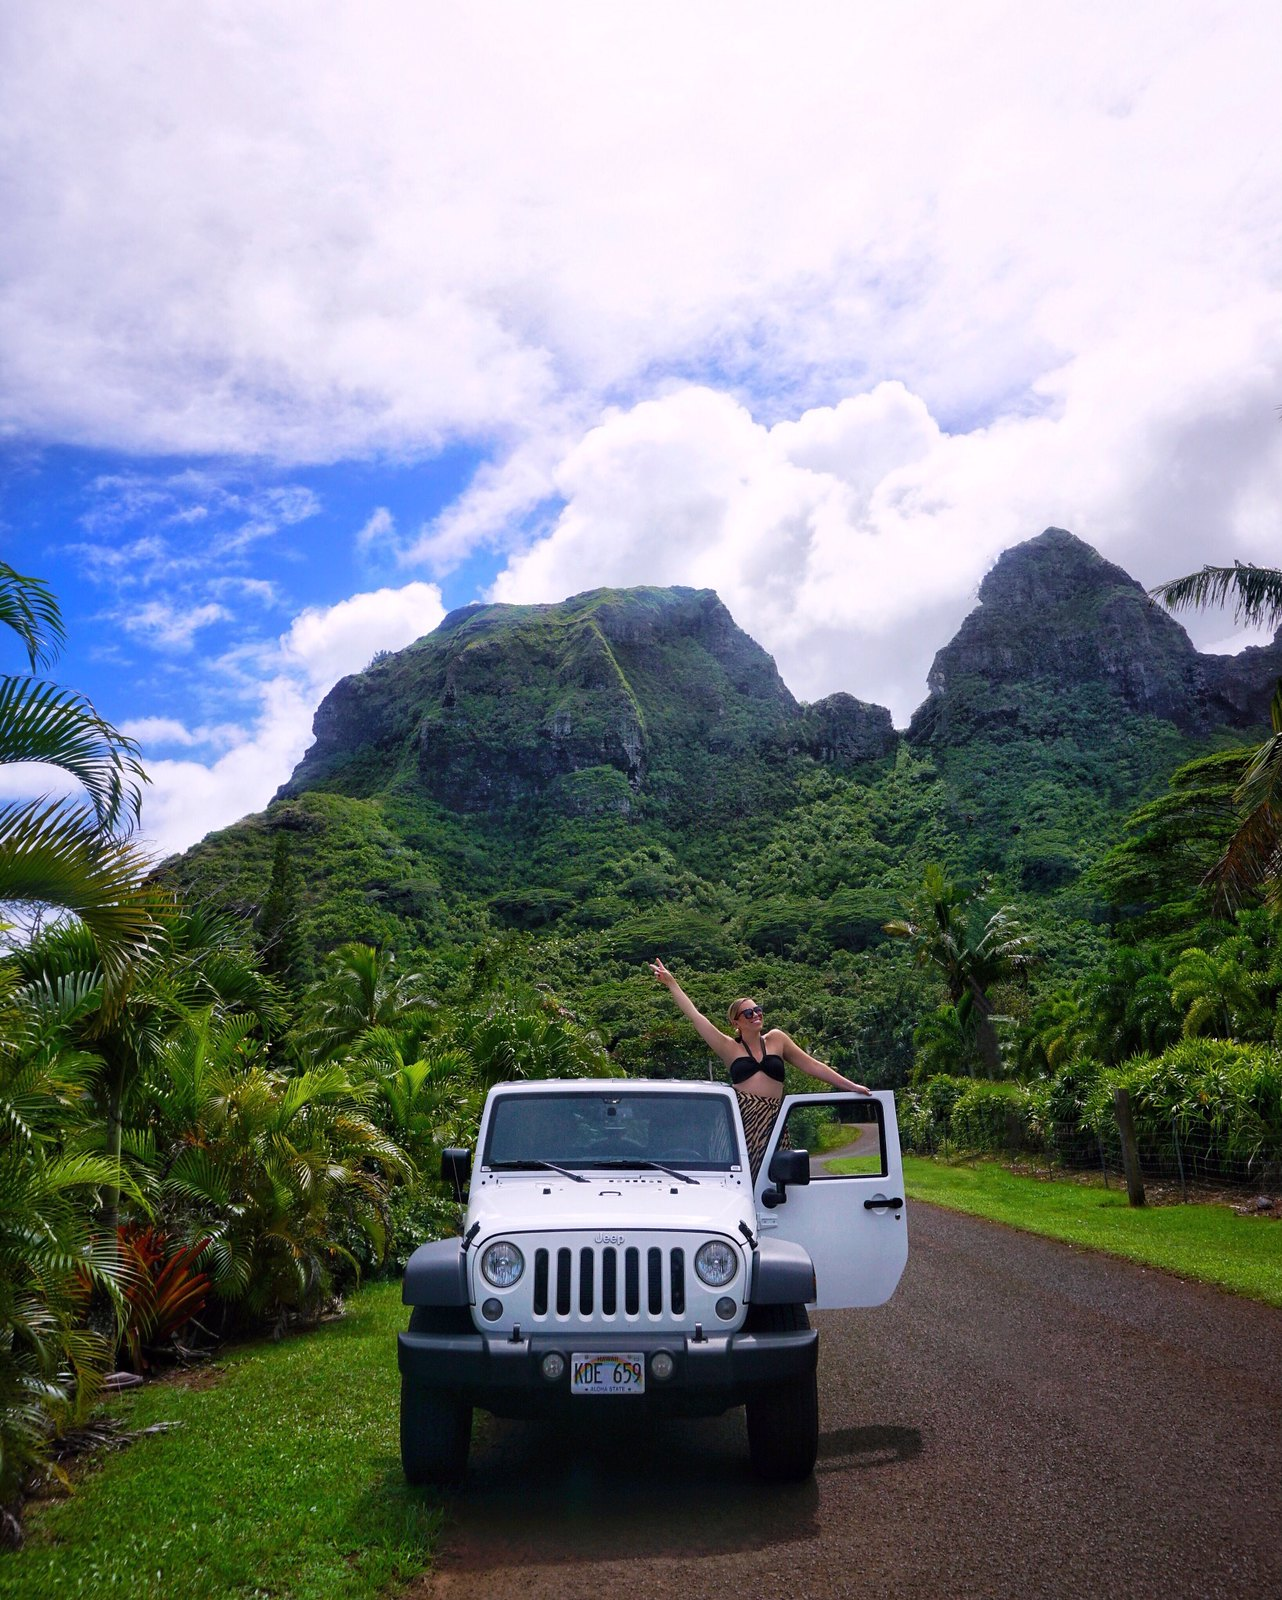 Jurassic Park White Jeep Hawaii Outfit Best Things to do in Kauai Hawaii